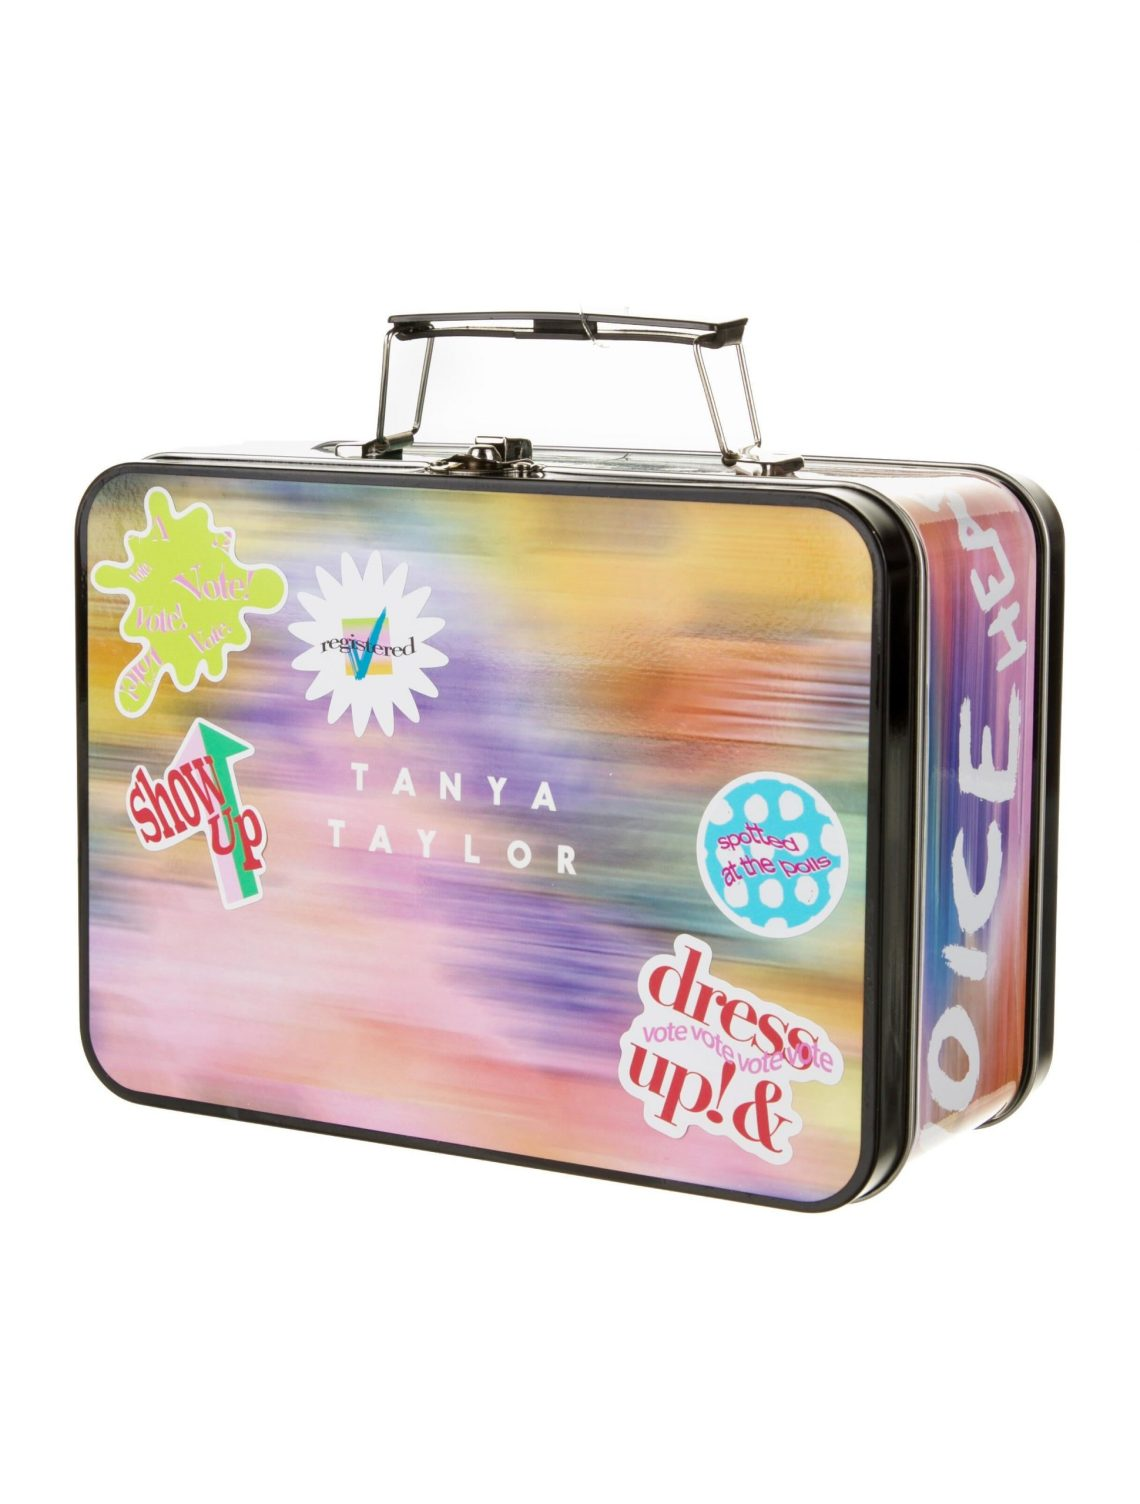 Tanya Taylor Lunchbox stickers